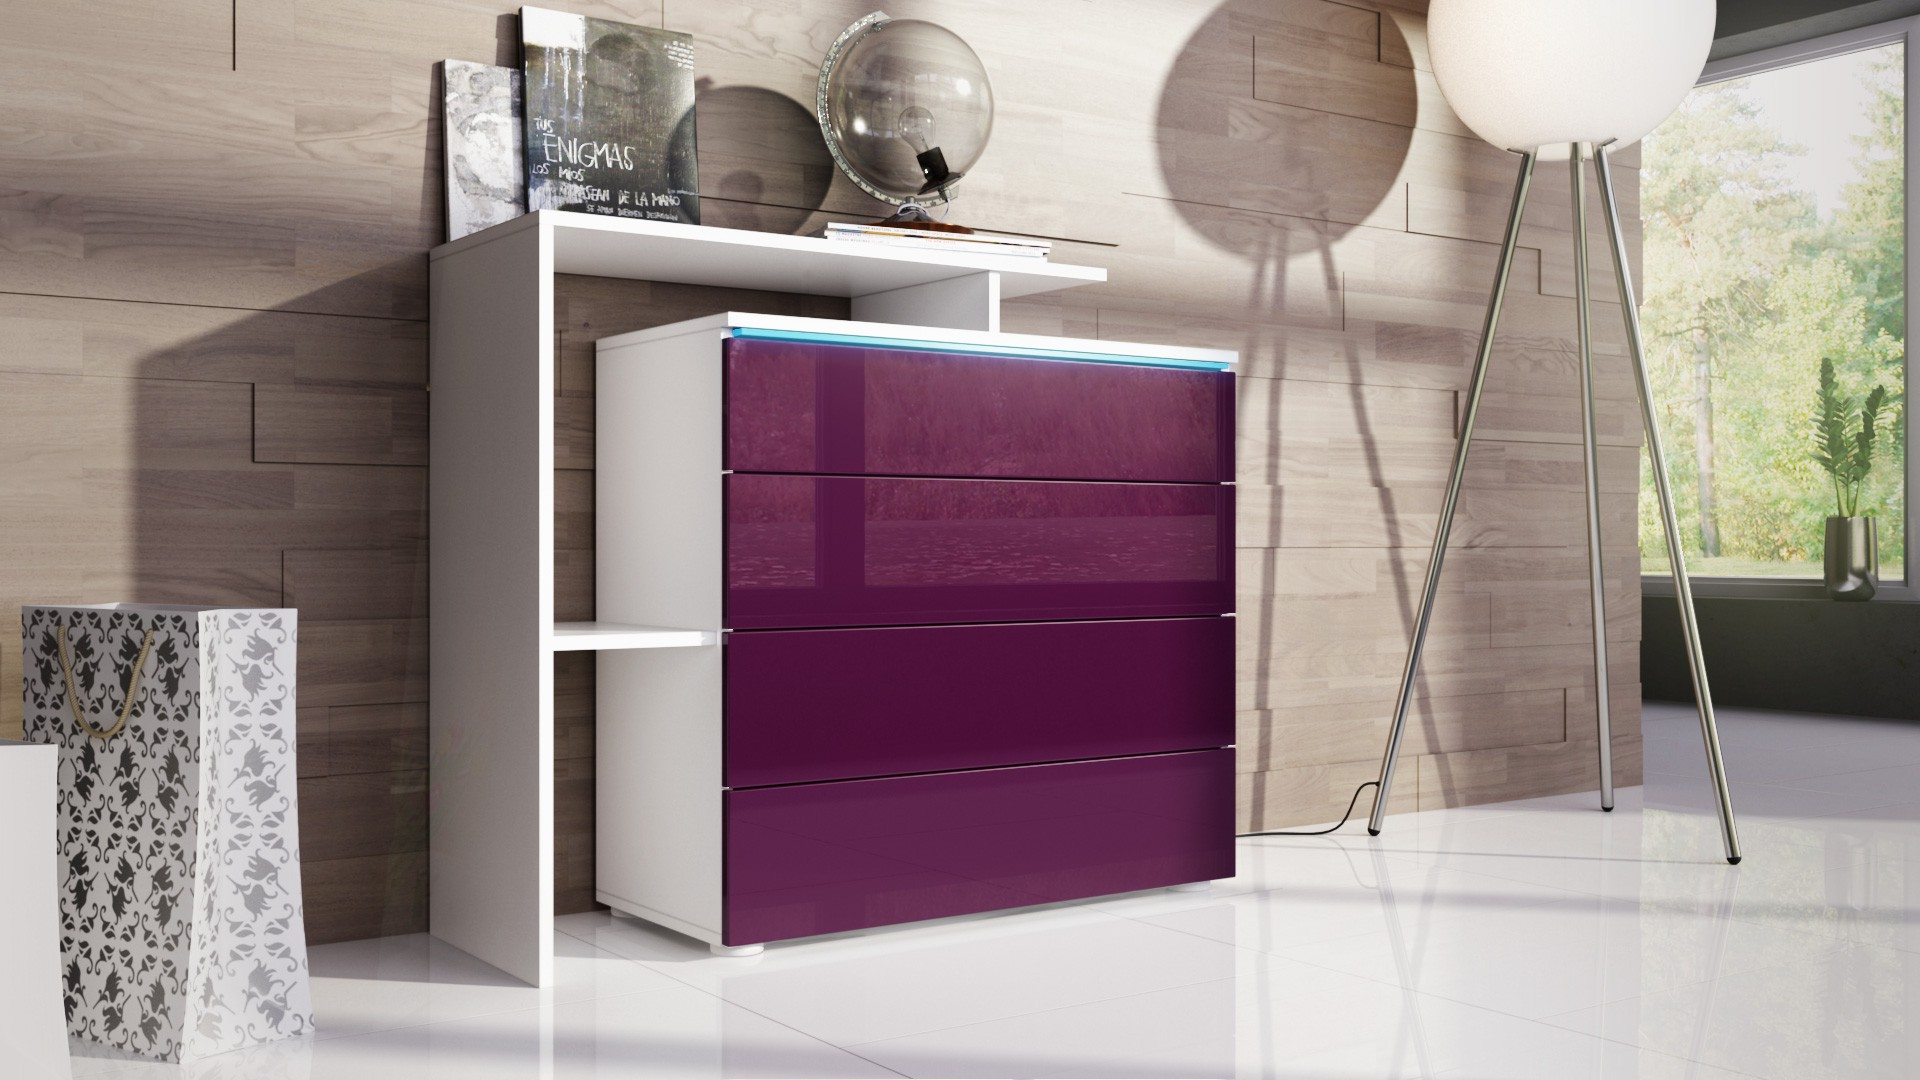 commode tr s design avec led blanche et m re pour meubles d 39 entr e. Black Bedroom Furniture Sets. Home Design Ideas